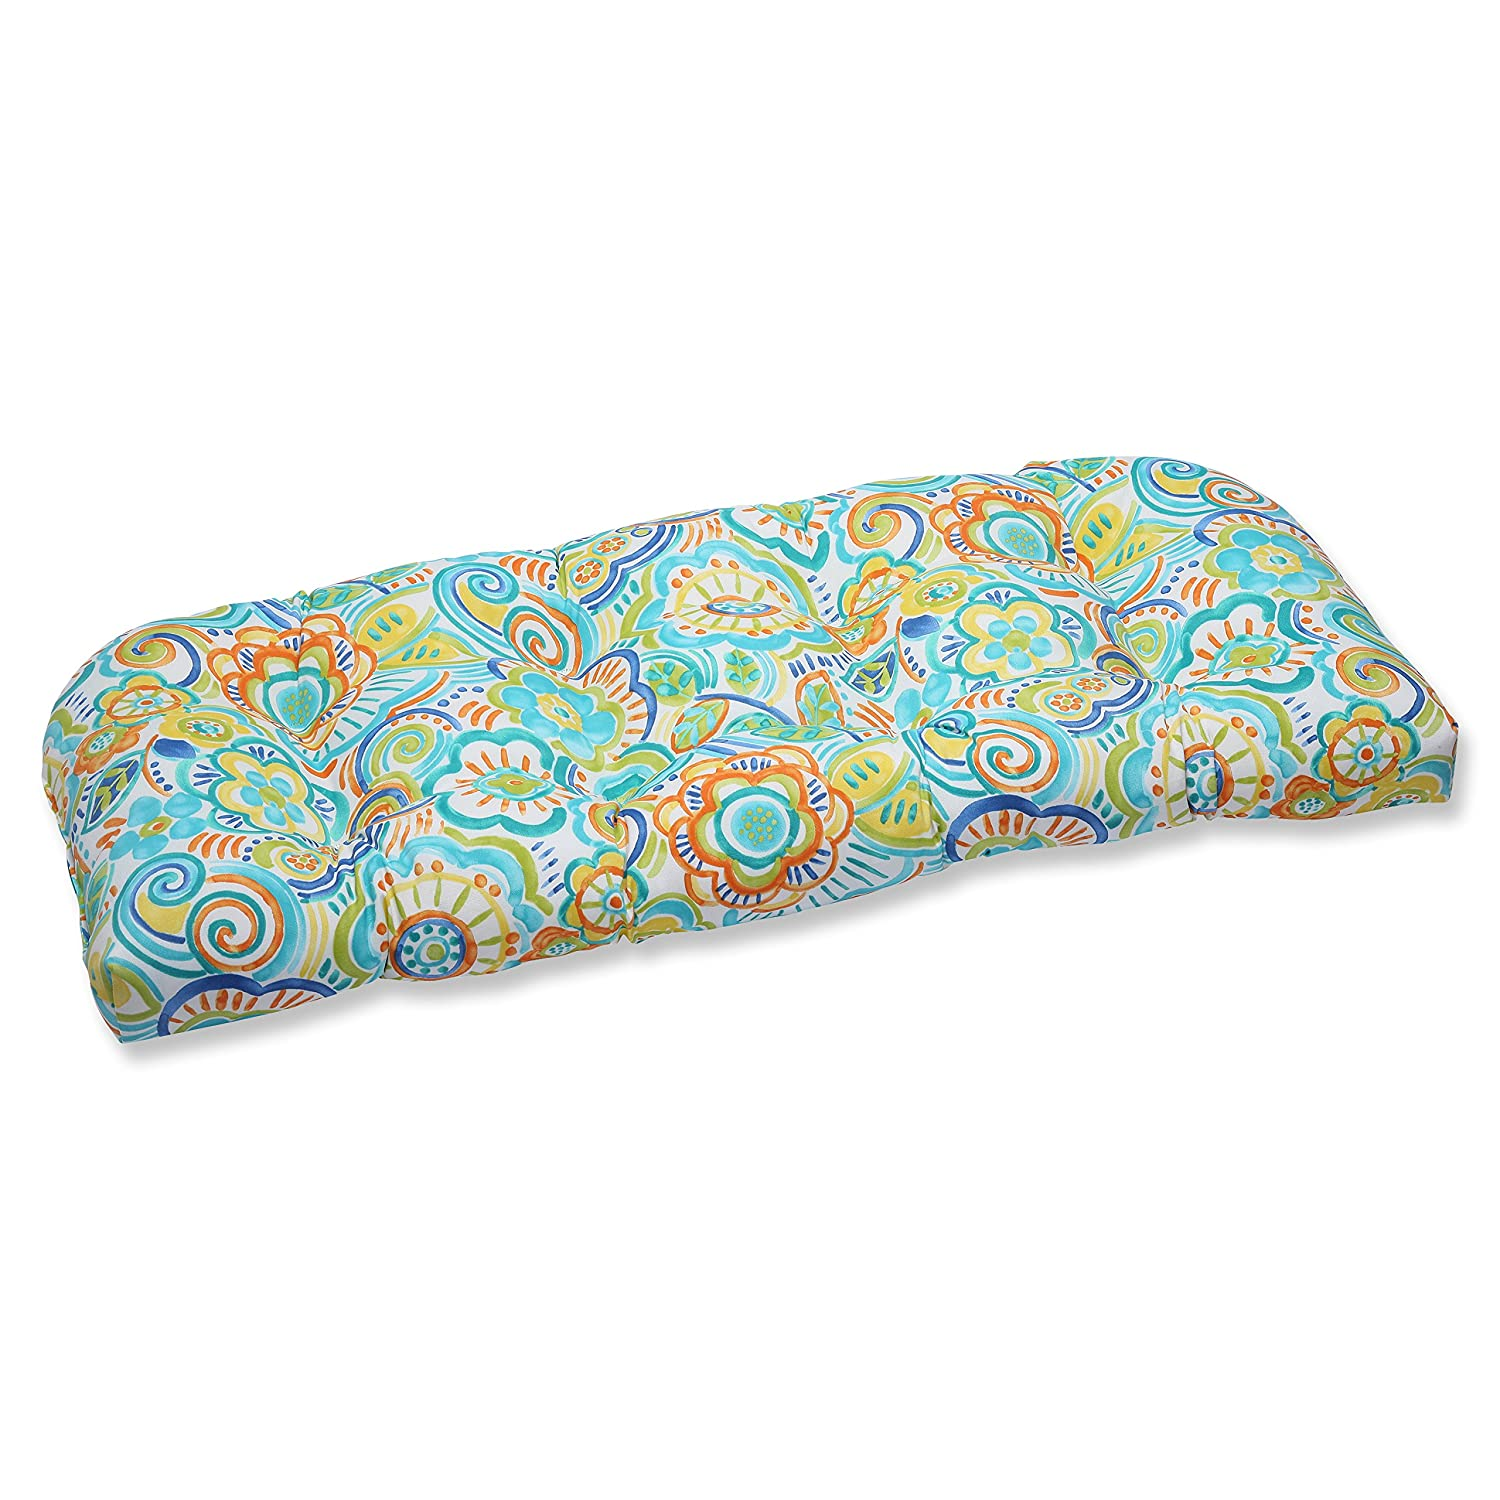 Pillow Perfect Outdoor Bronwood Caribbean Wicker Loveseat Cushion, Multicolored